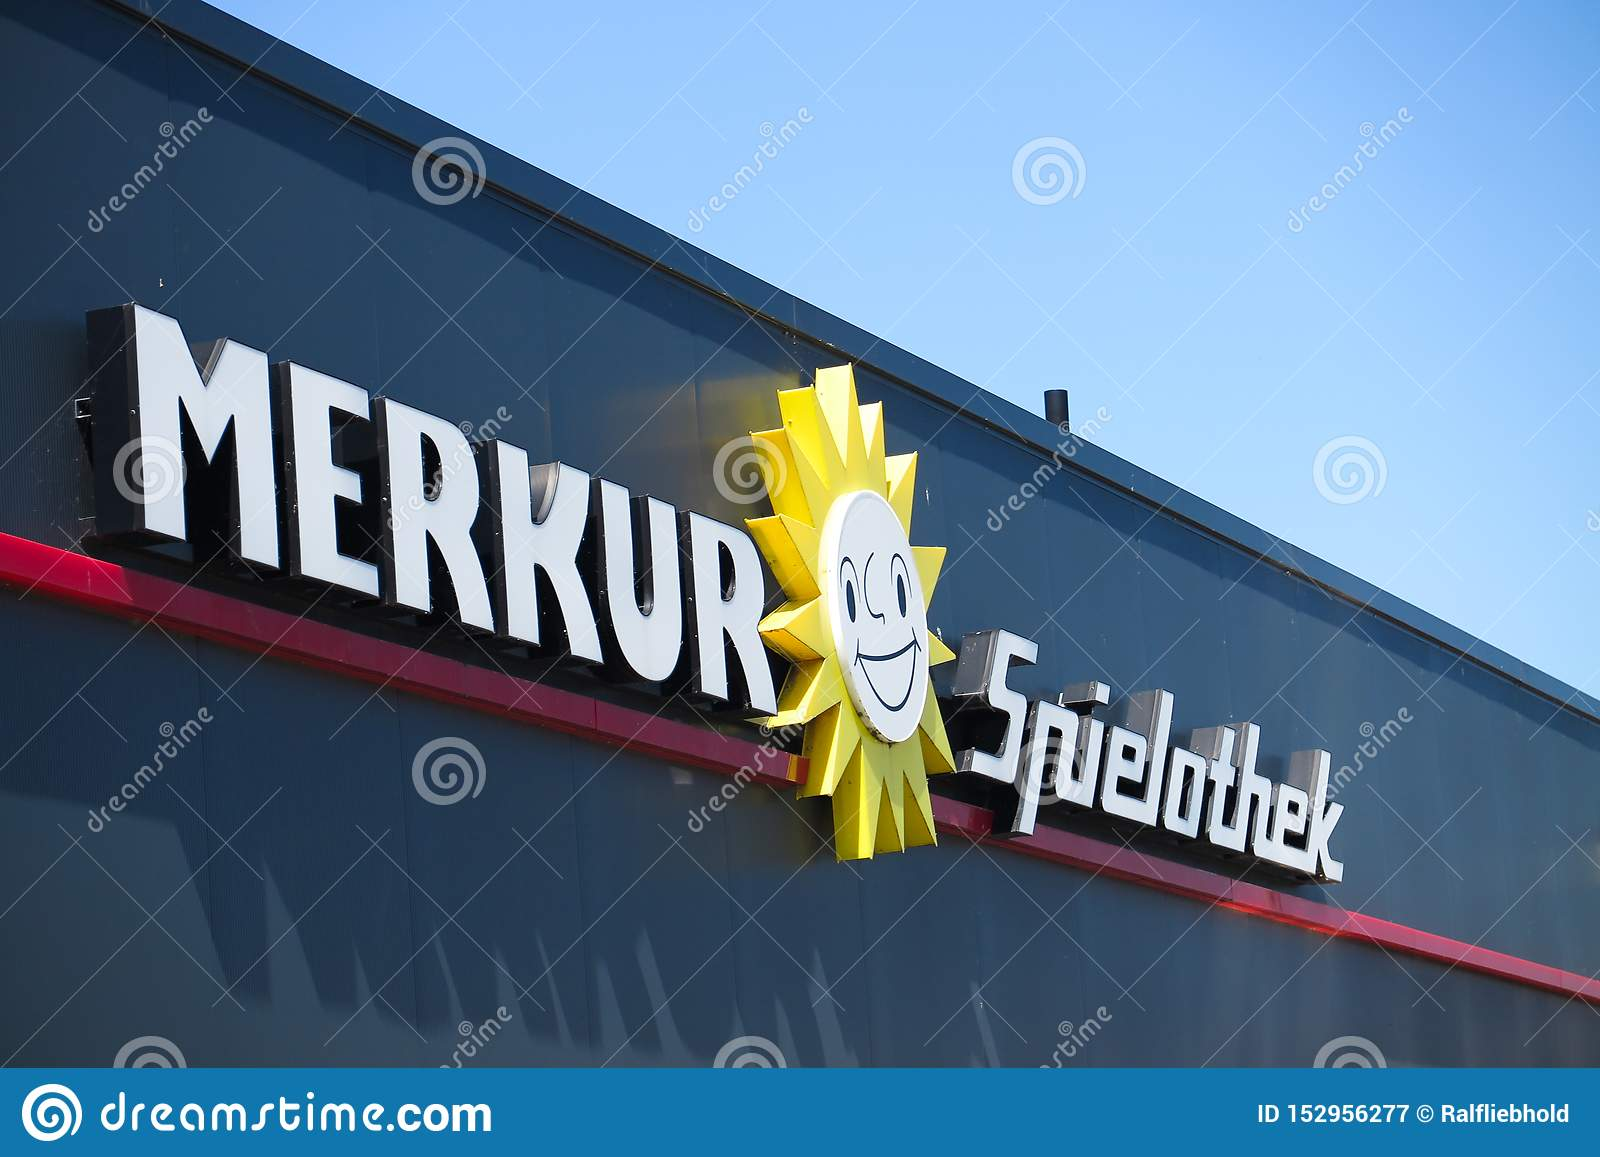 TOENISVORST, GERMANY - JUIN 28. 2019: Close up of text and sun logo on black facade with blue sky of Merkur Spielothek german